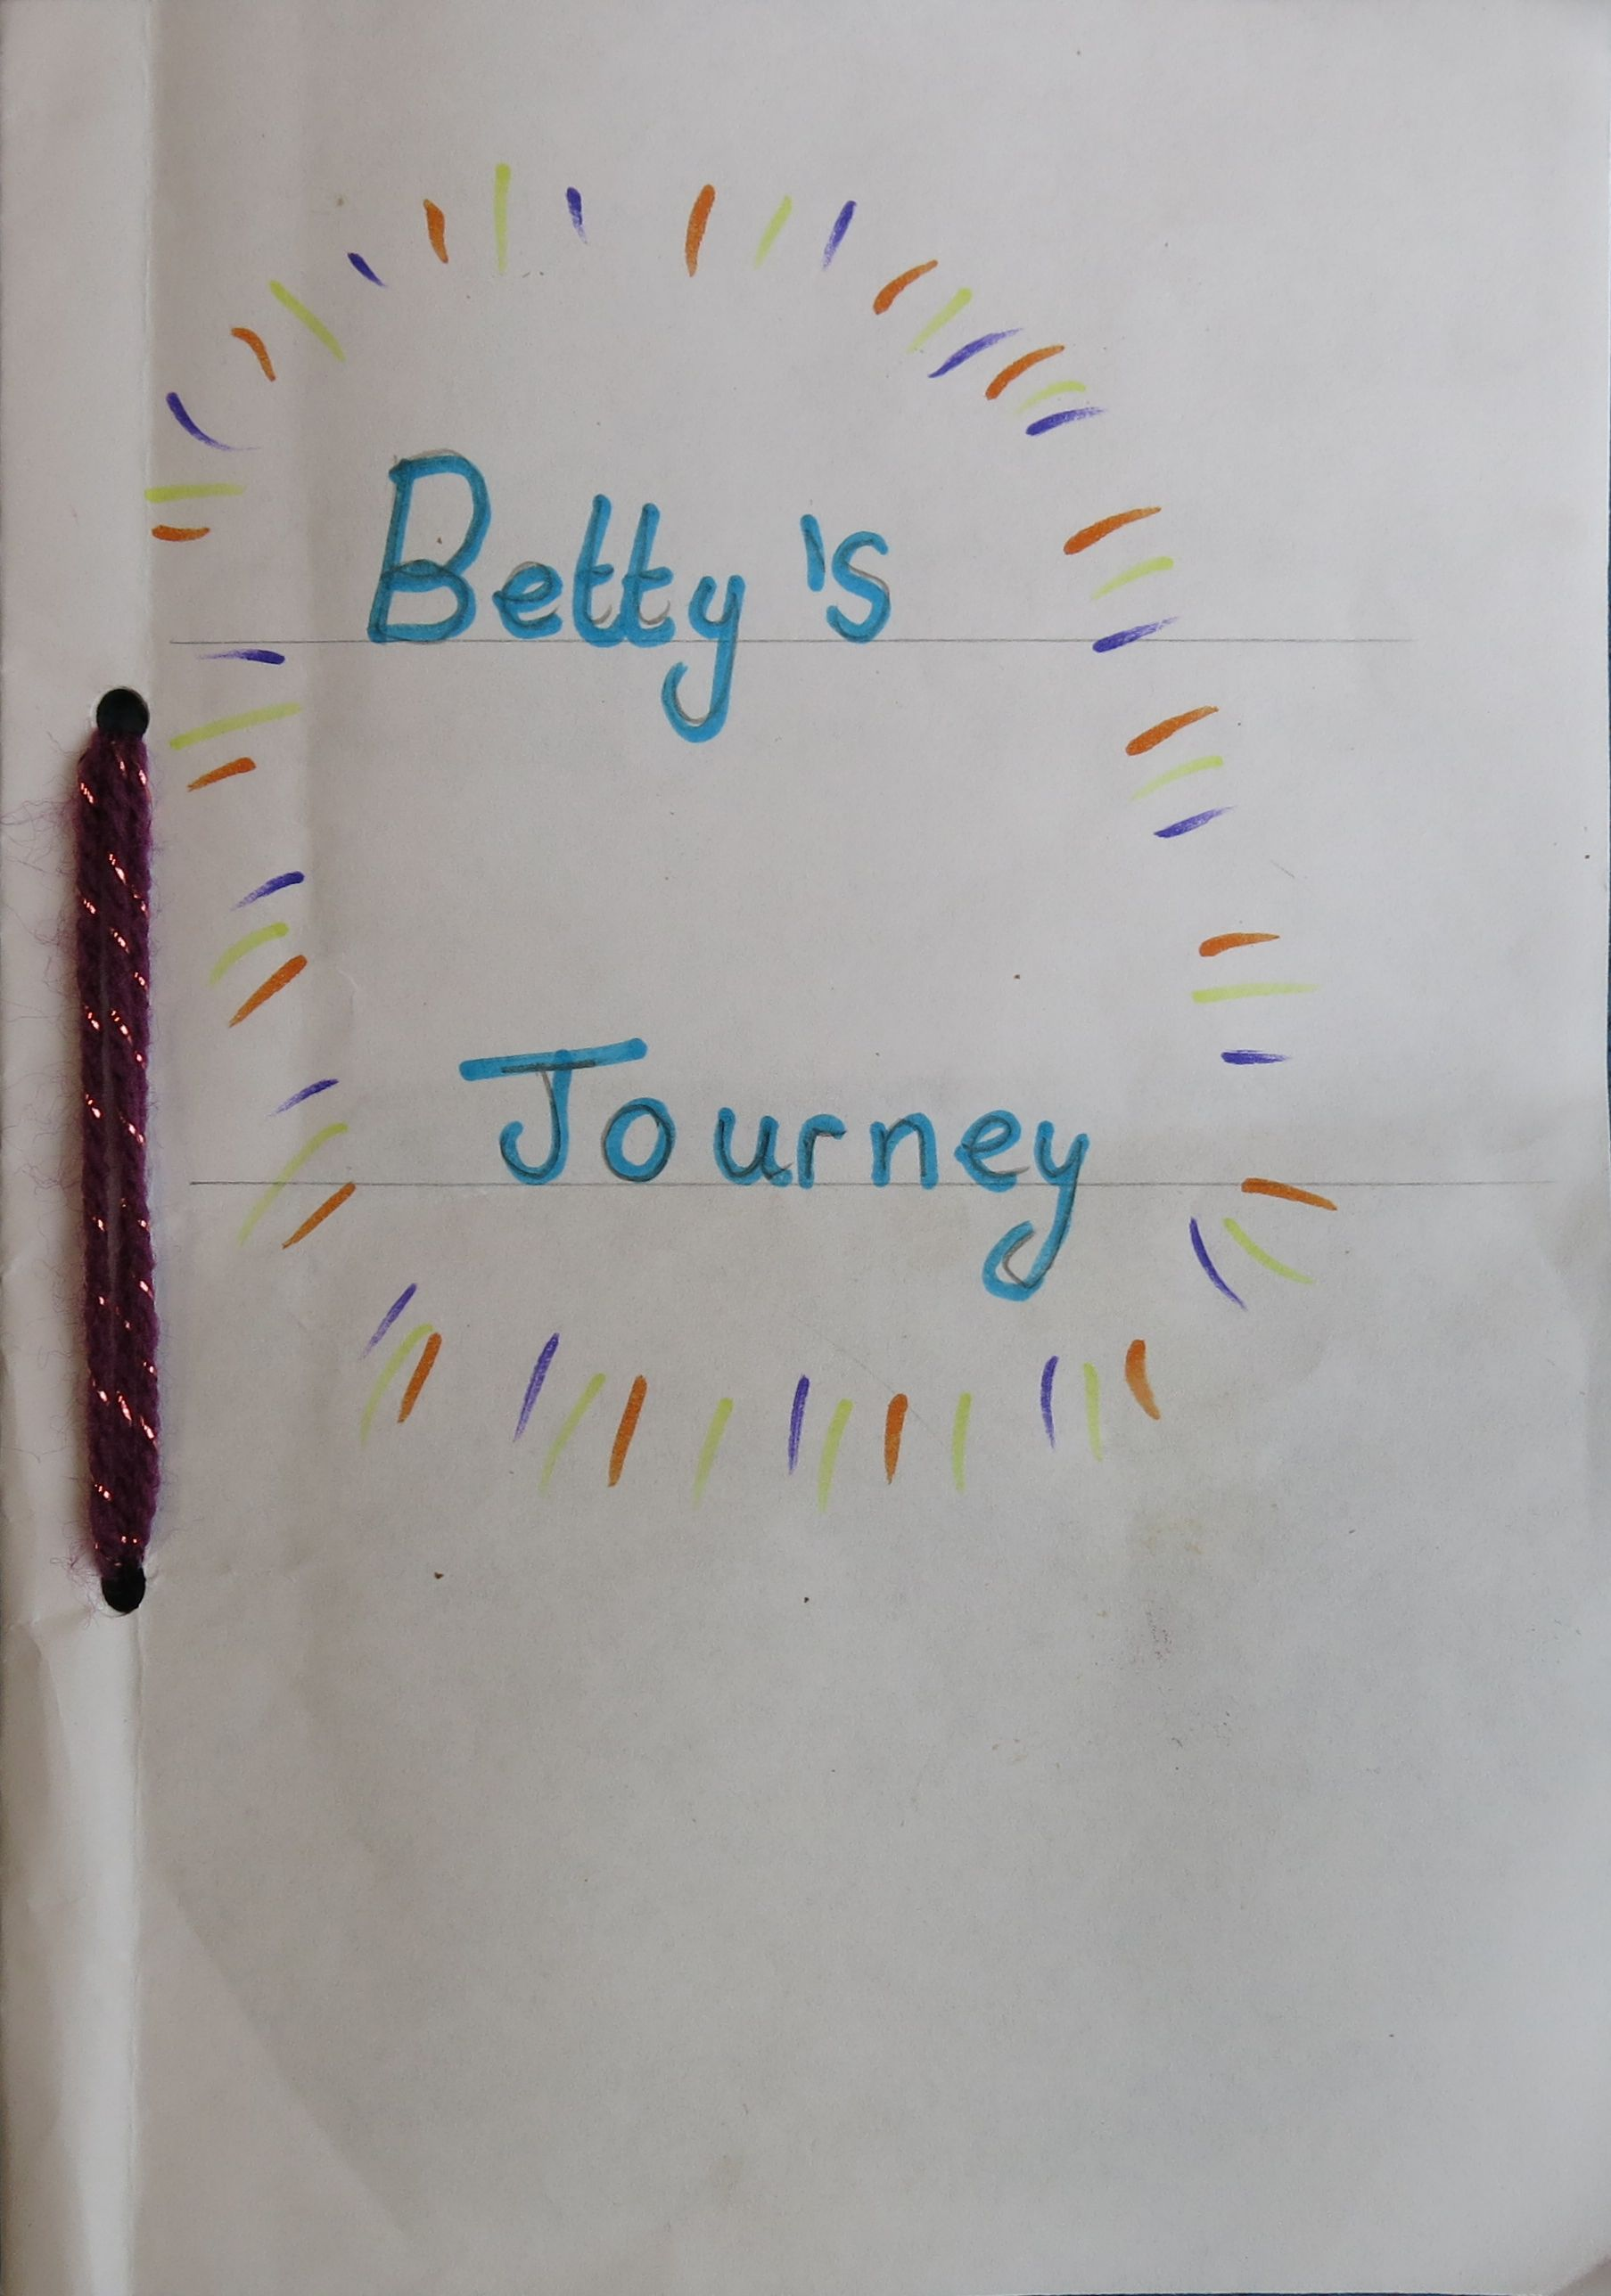 Betty's Journey by LG - 1